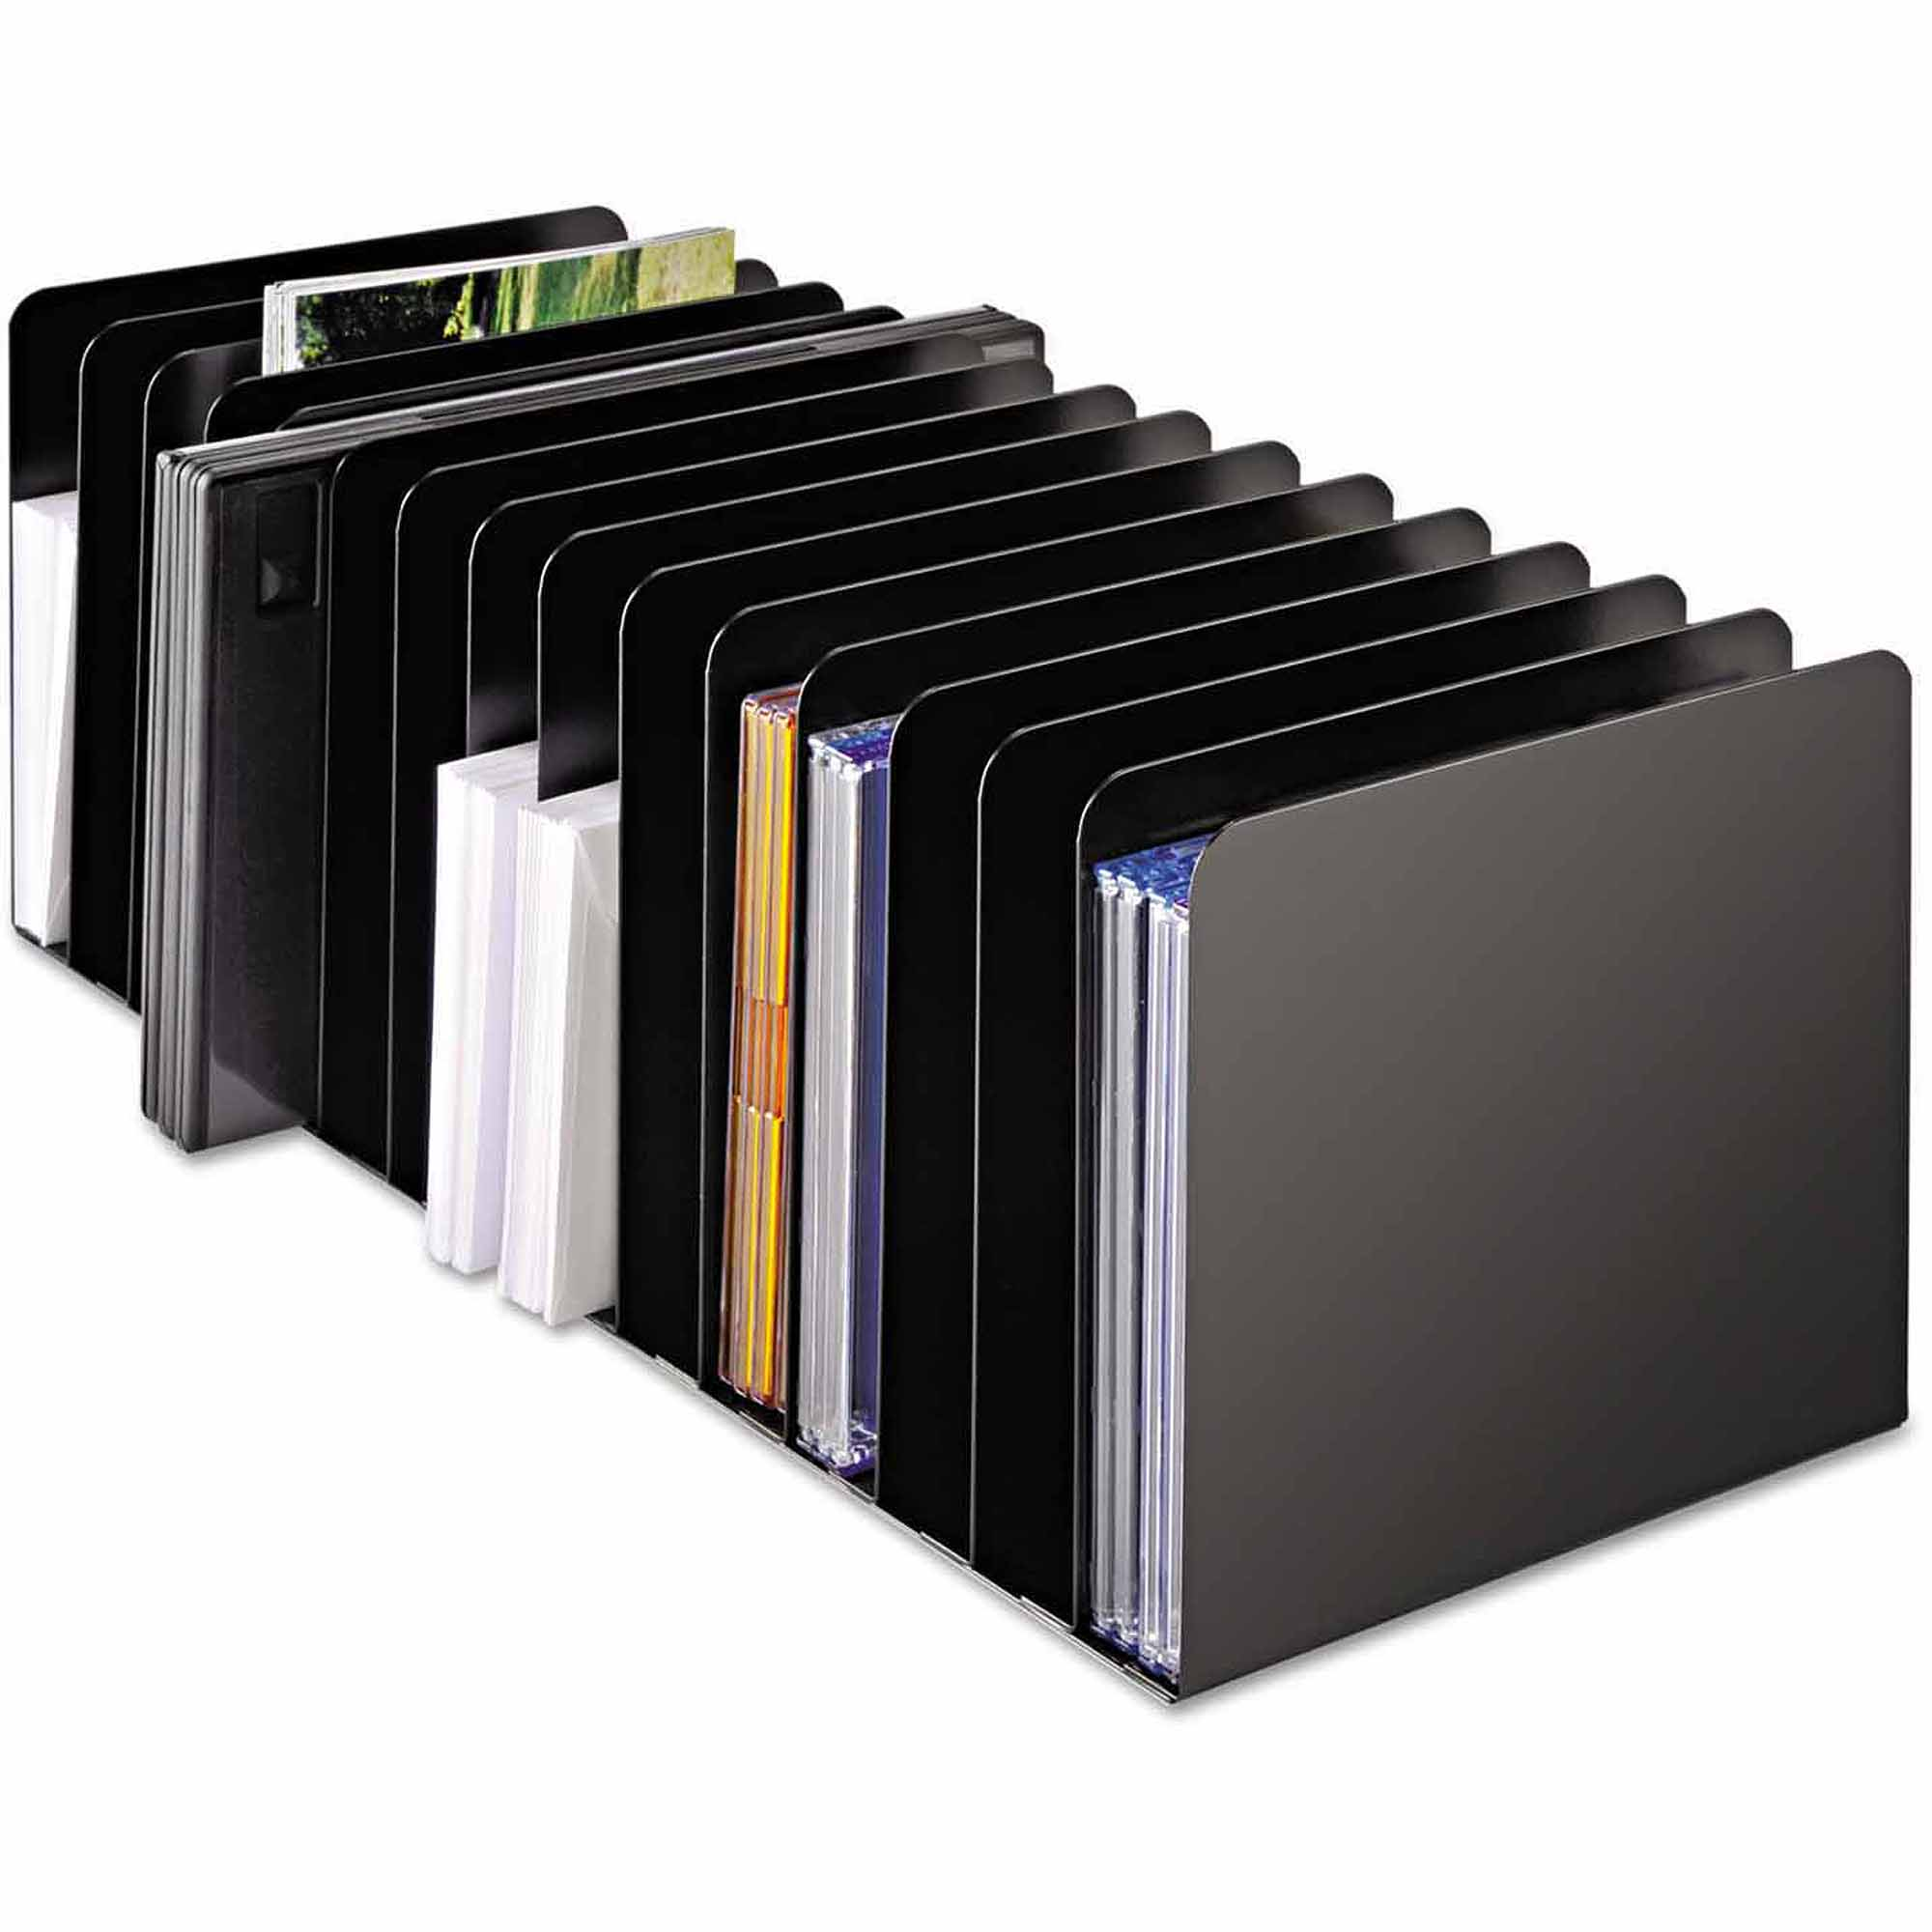 "SteelMaster Message Rack, 15 Compartments, Steel, 6.25"" x 16-1/10"" x 6.5"", Black"